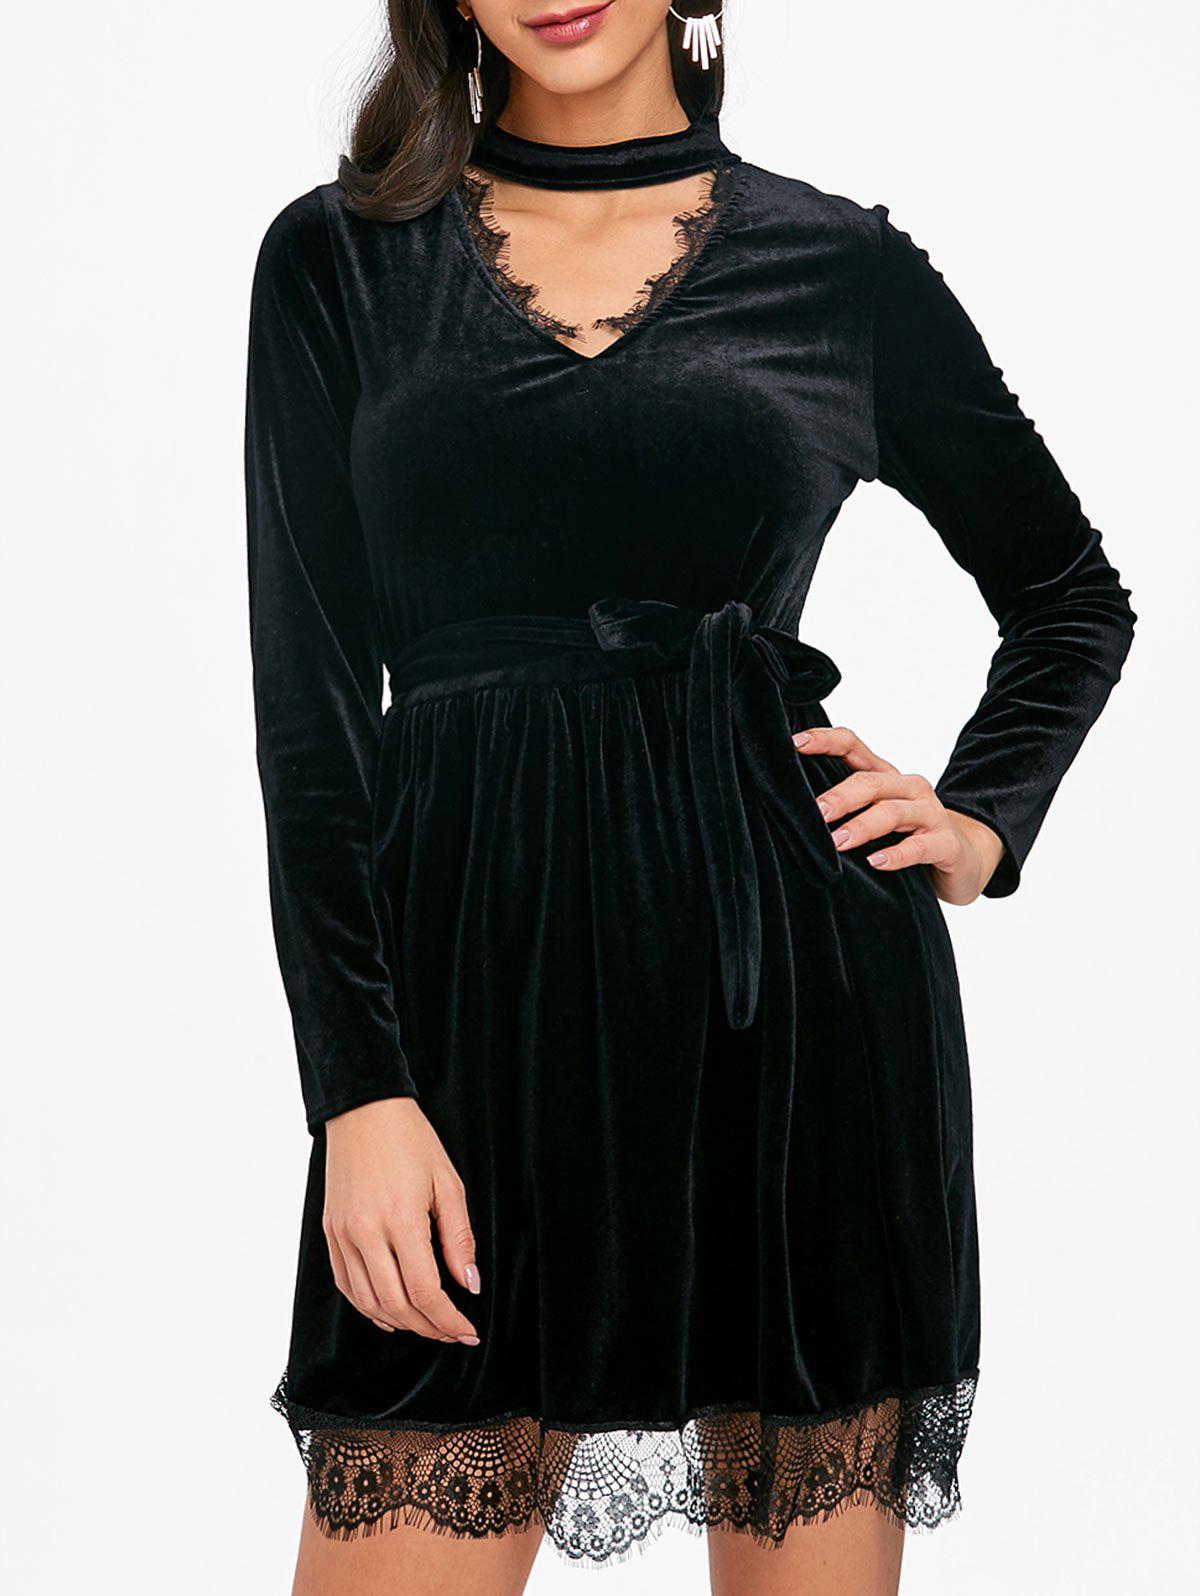 Lace Ttrimmed Belted Velvet Dress - BLACK L